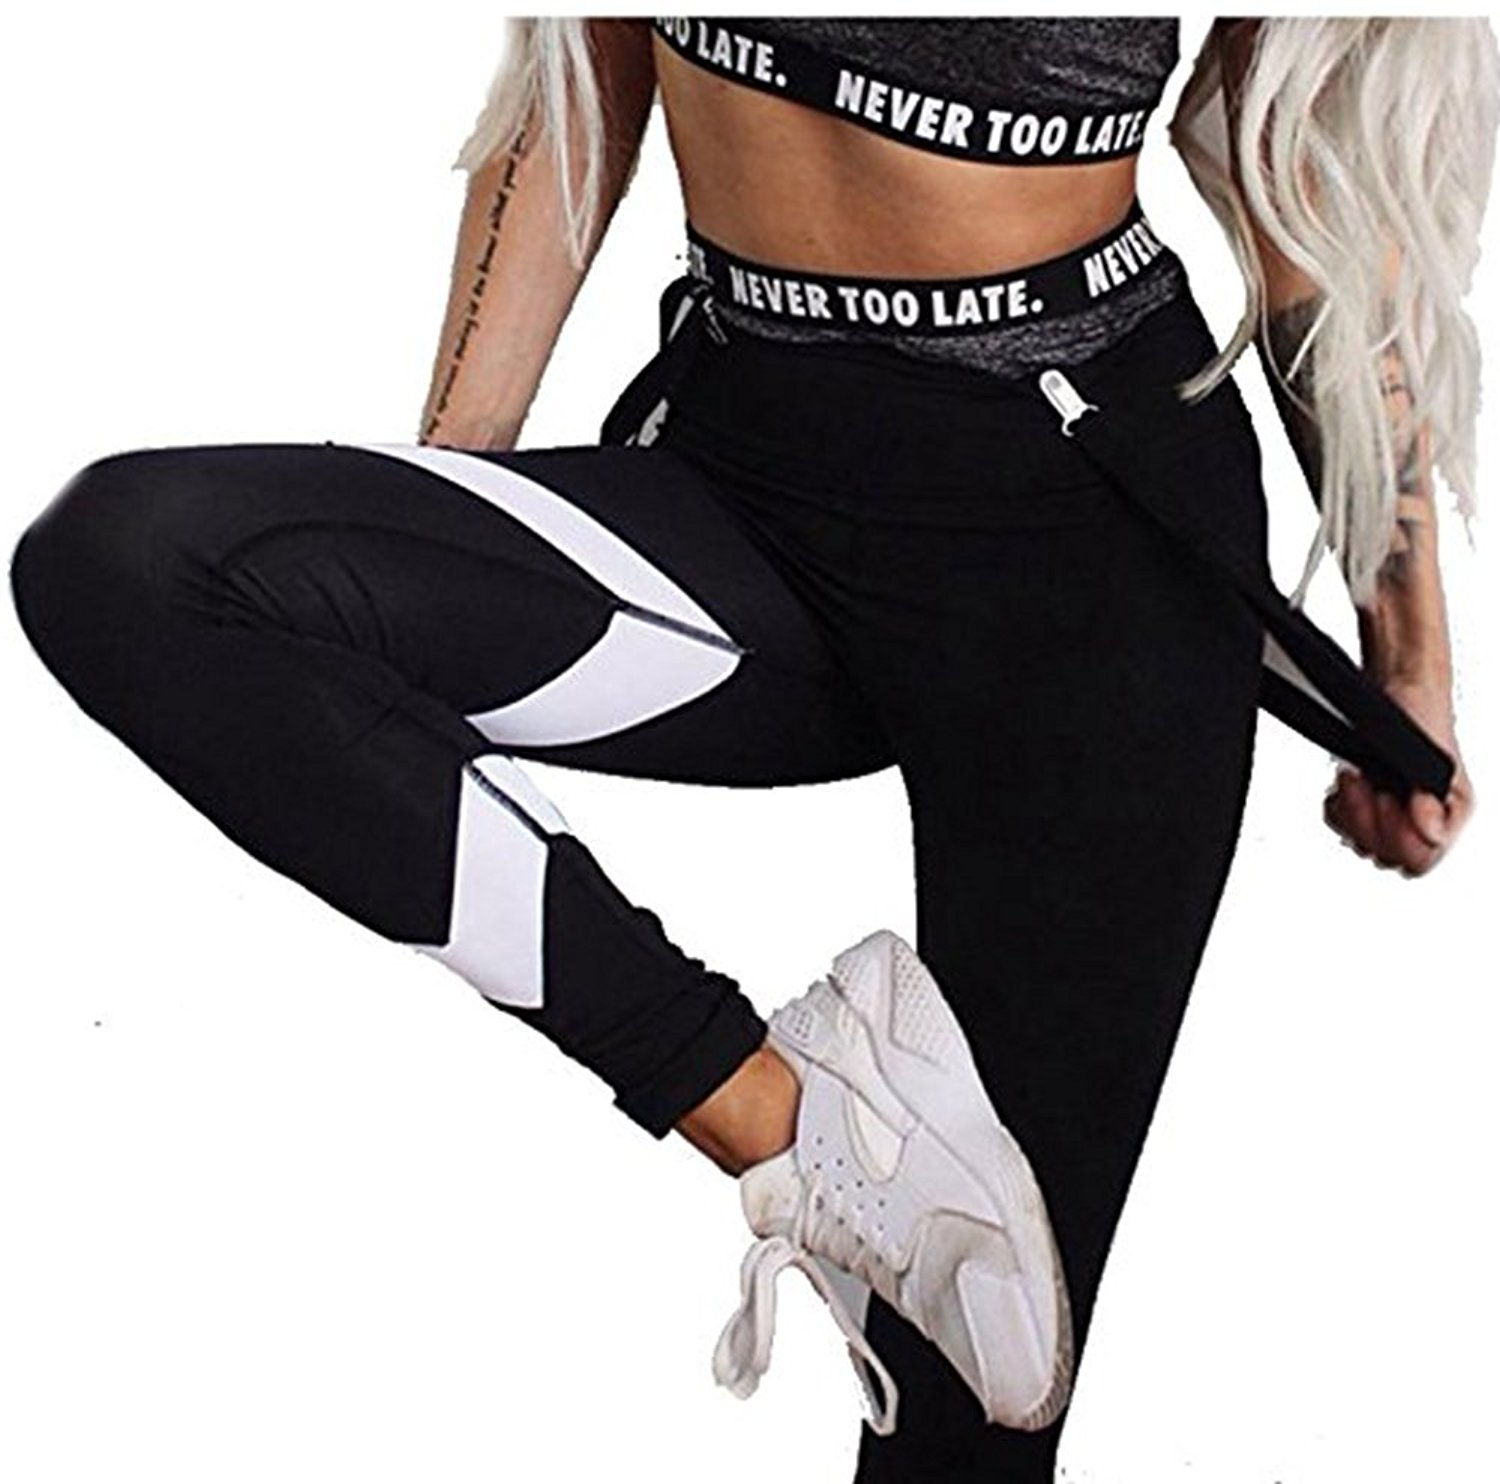 bf15547c66b7c2 Get Quotations · Black Yoga Leggings White Stripes Pritned Yoga Pants  Elatic High Waisted Butt Lift Tights Workout Pants